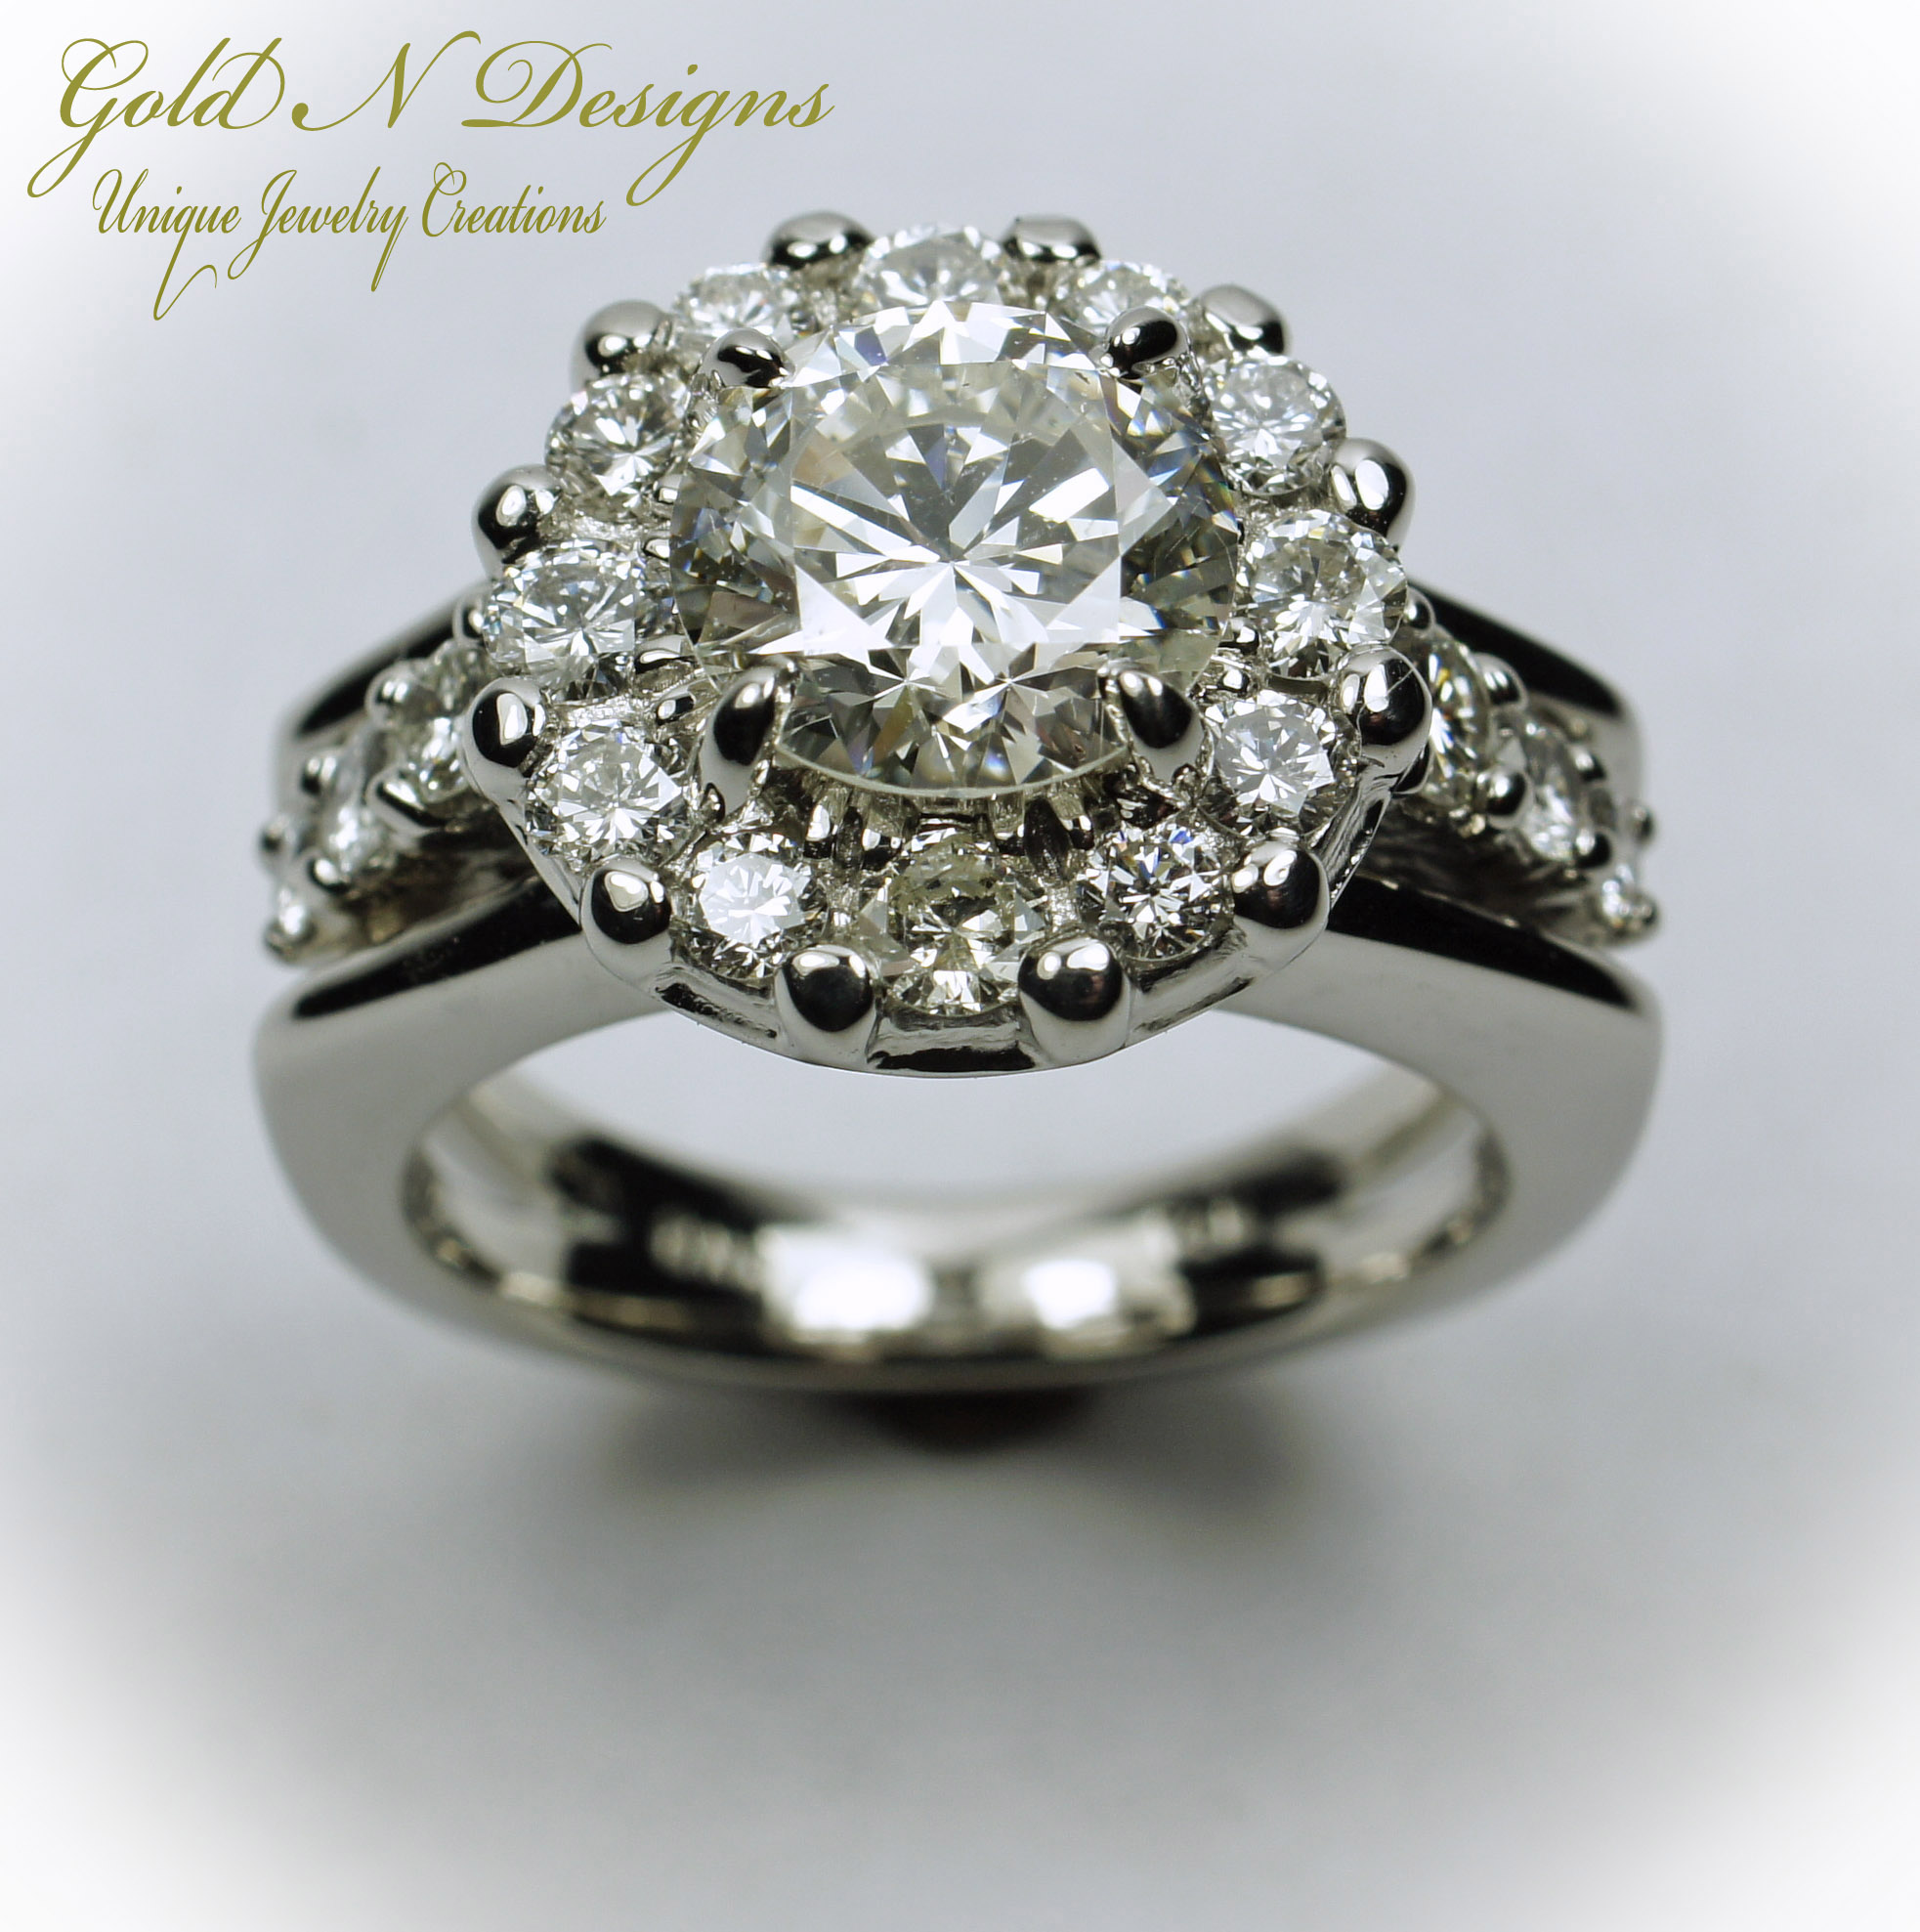 ring online ladies shopping abiraame st arty jewellers home casting your engagement rings jewellery